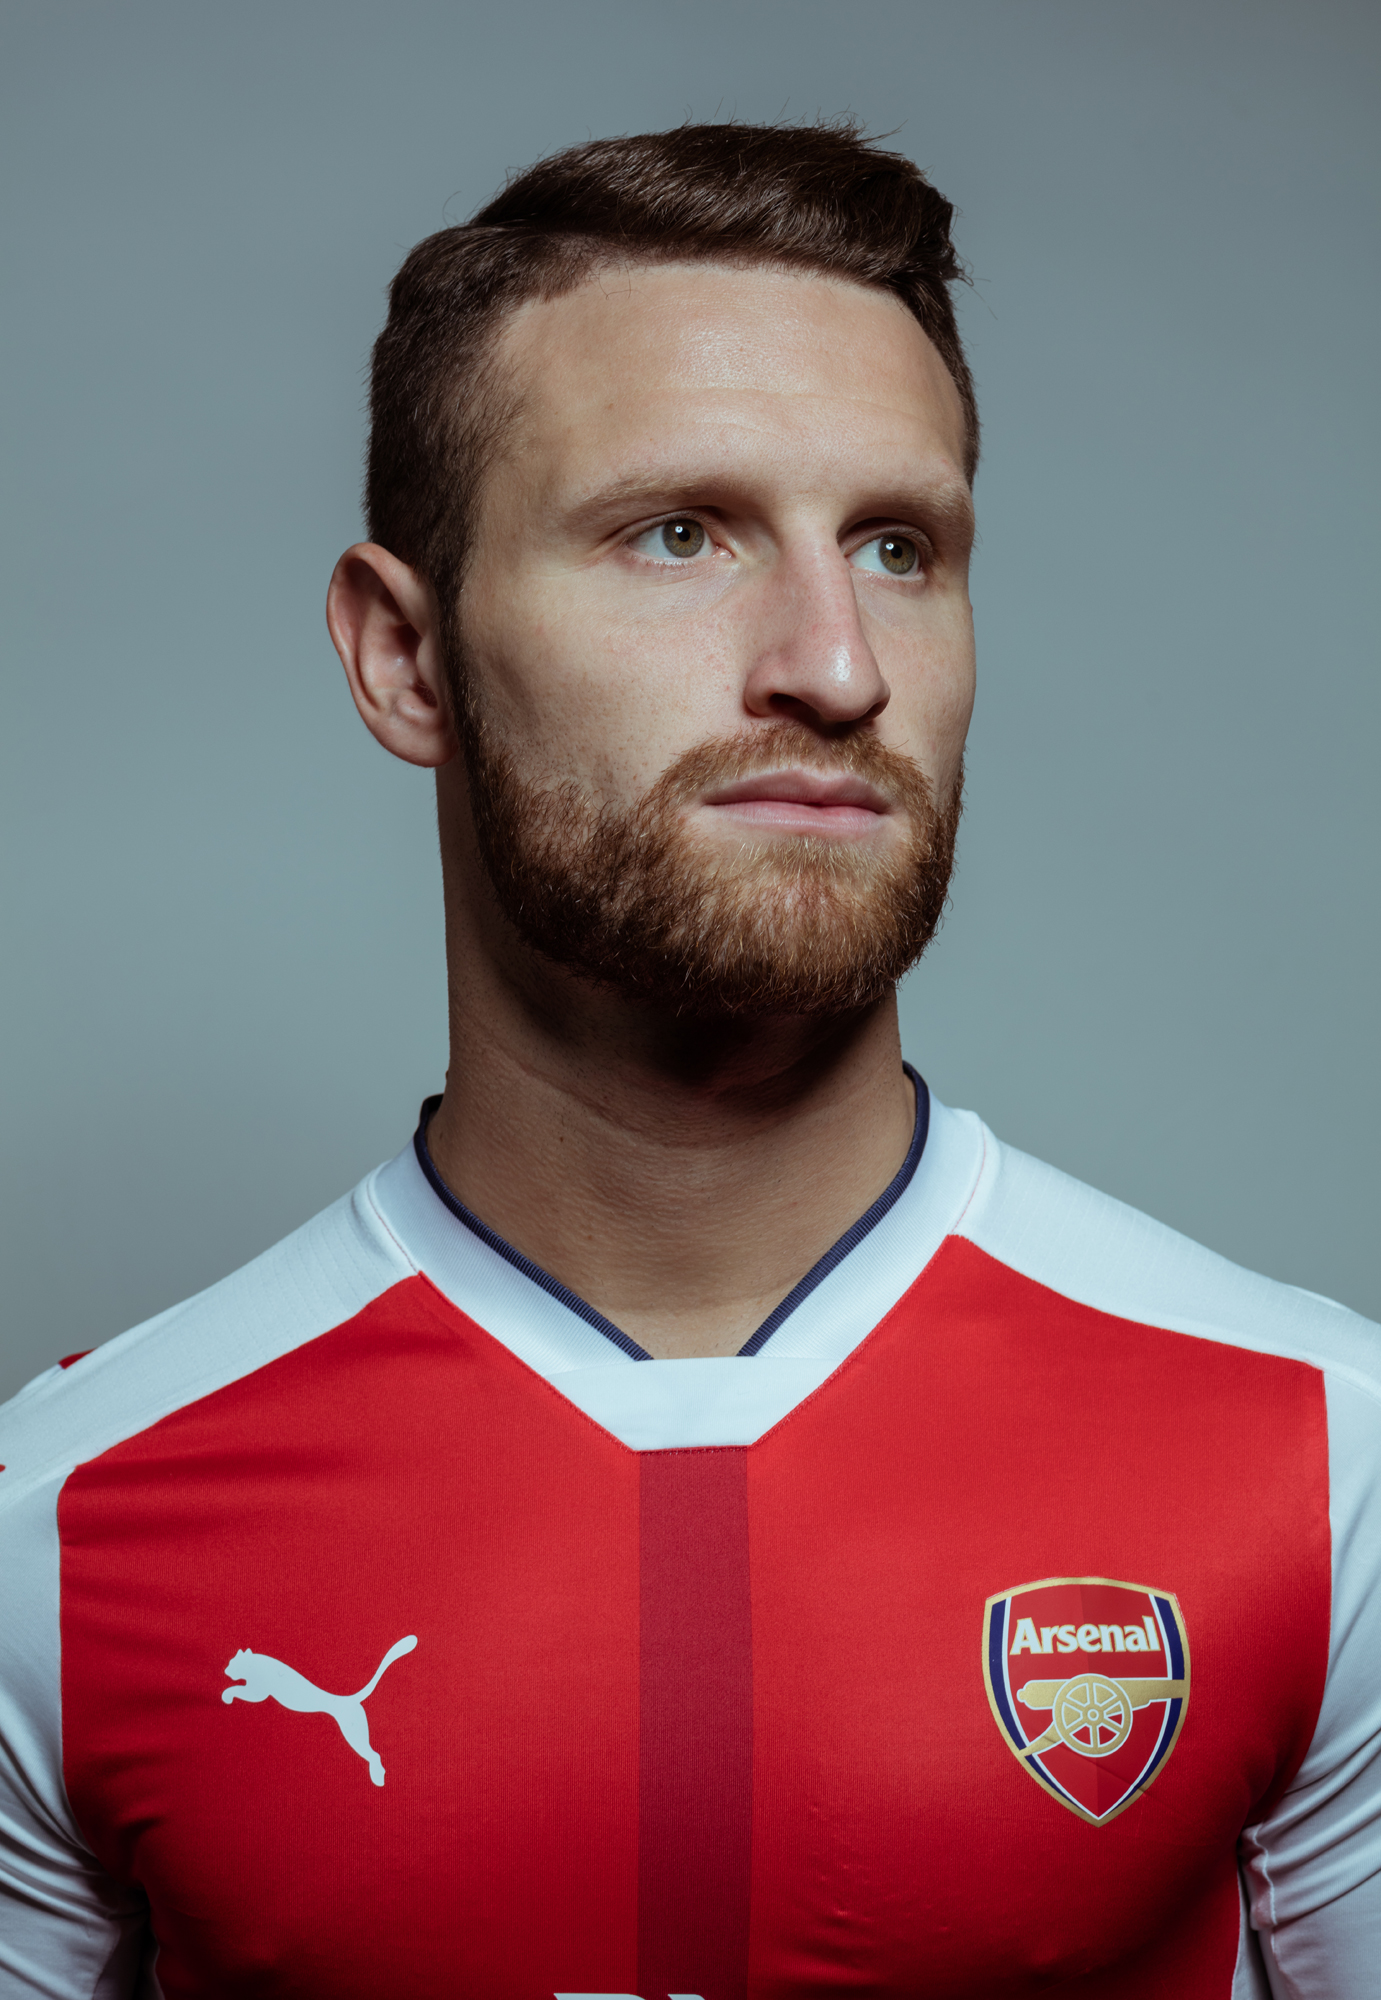 Arsenal_Portraits_0009.jpg